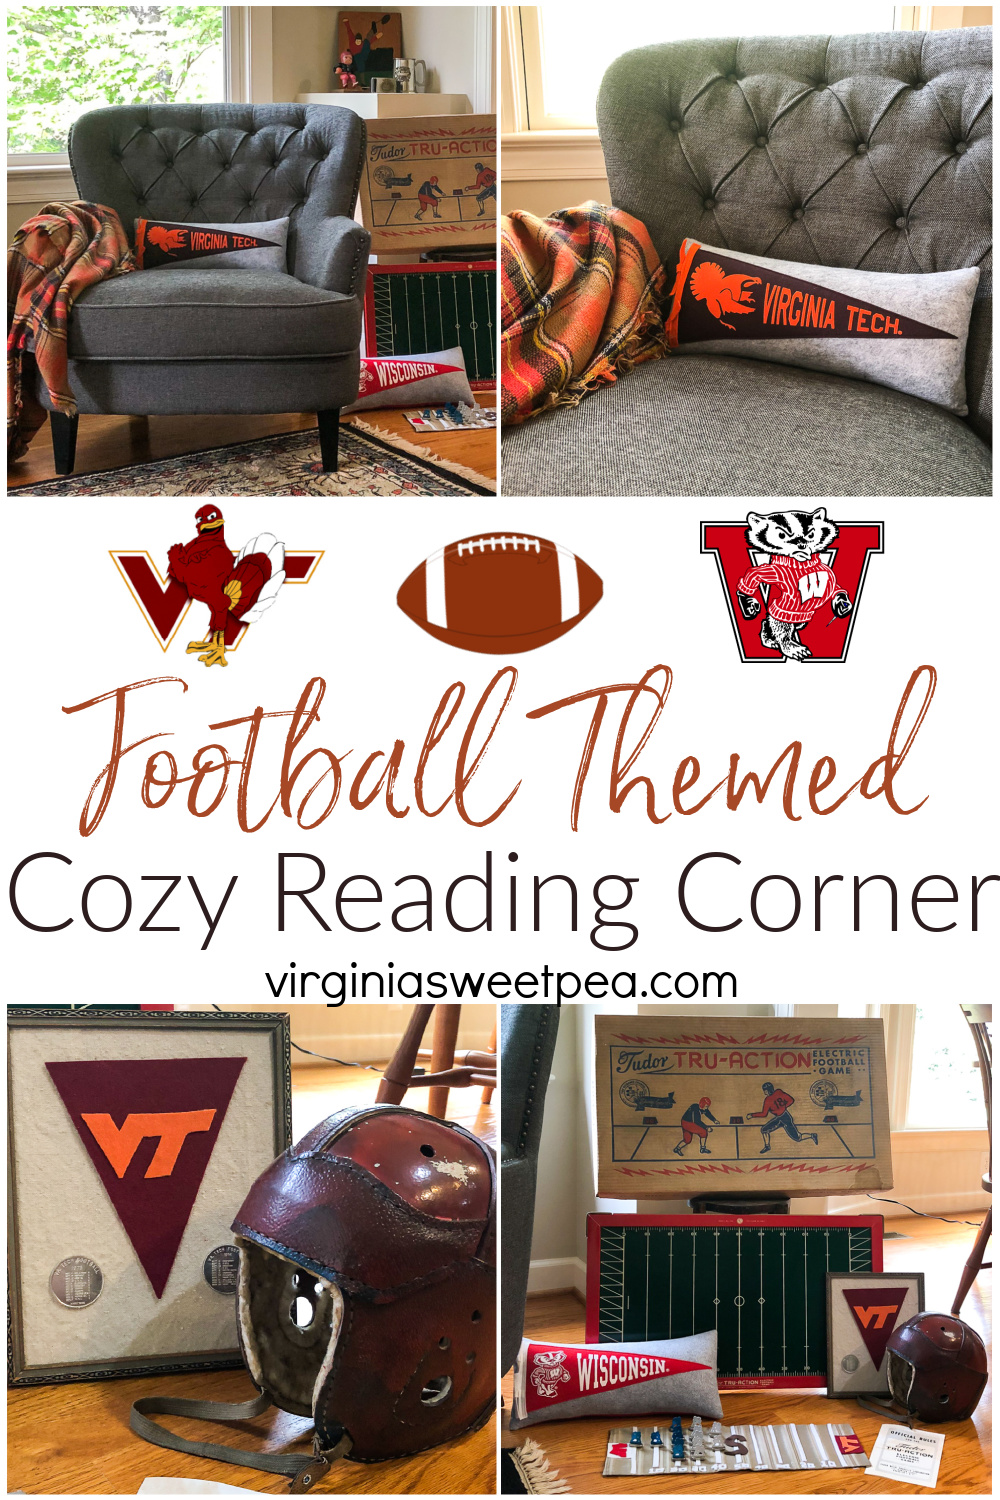 Football Themed Cozy Reading Corner - Who doesn't associate football with fall?  This reading corner is decorated with both Virginia Tech and Wisconsin football decor along with vintage football items from the 1920s through 1970s.  #footballdecor #virginiatech #hokies #vintagehomedecor  via @spaula